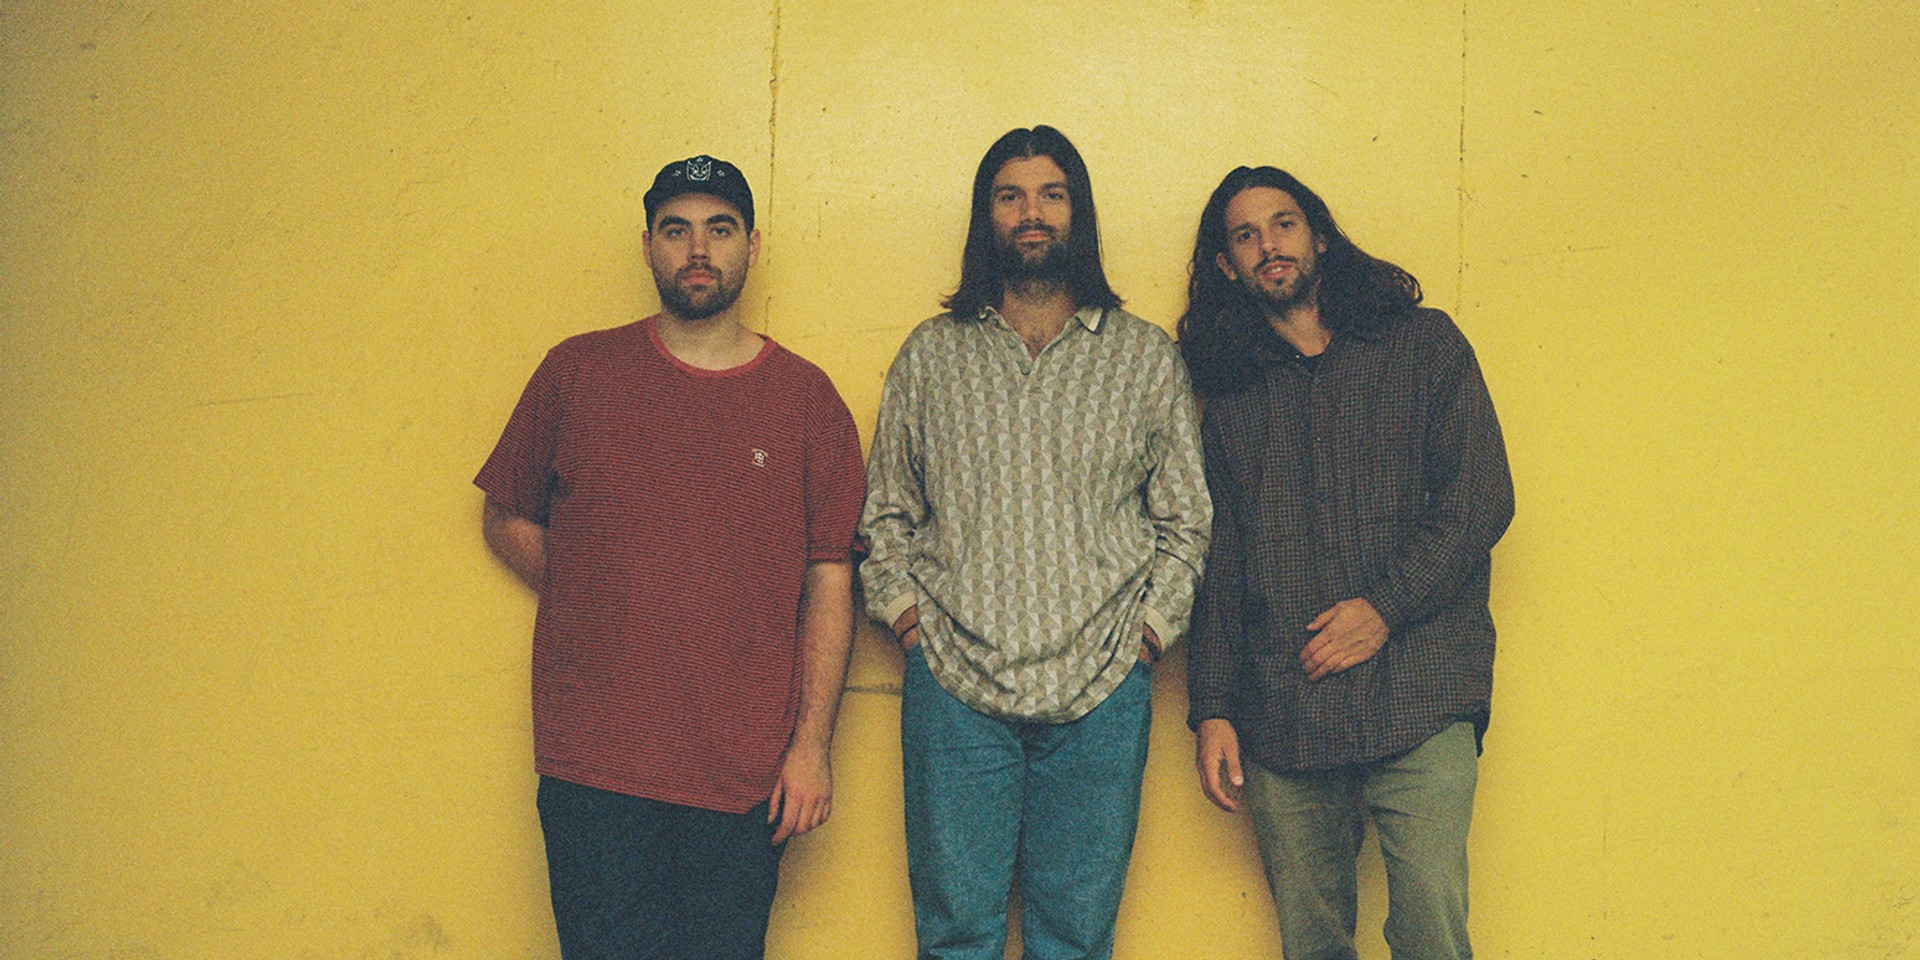 Turnover announces new album, Altogether, shares new songs and music video